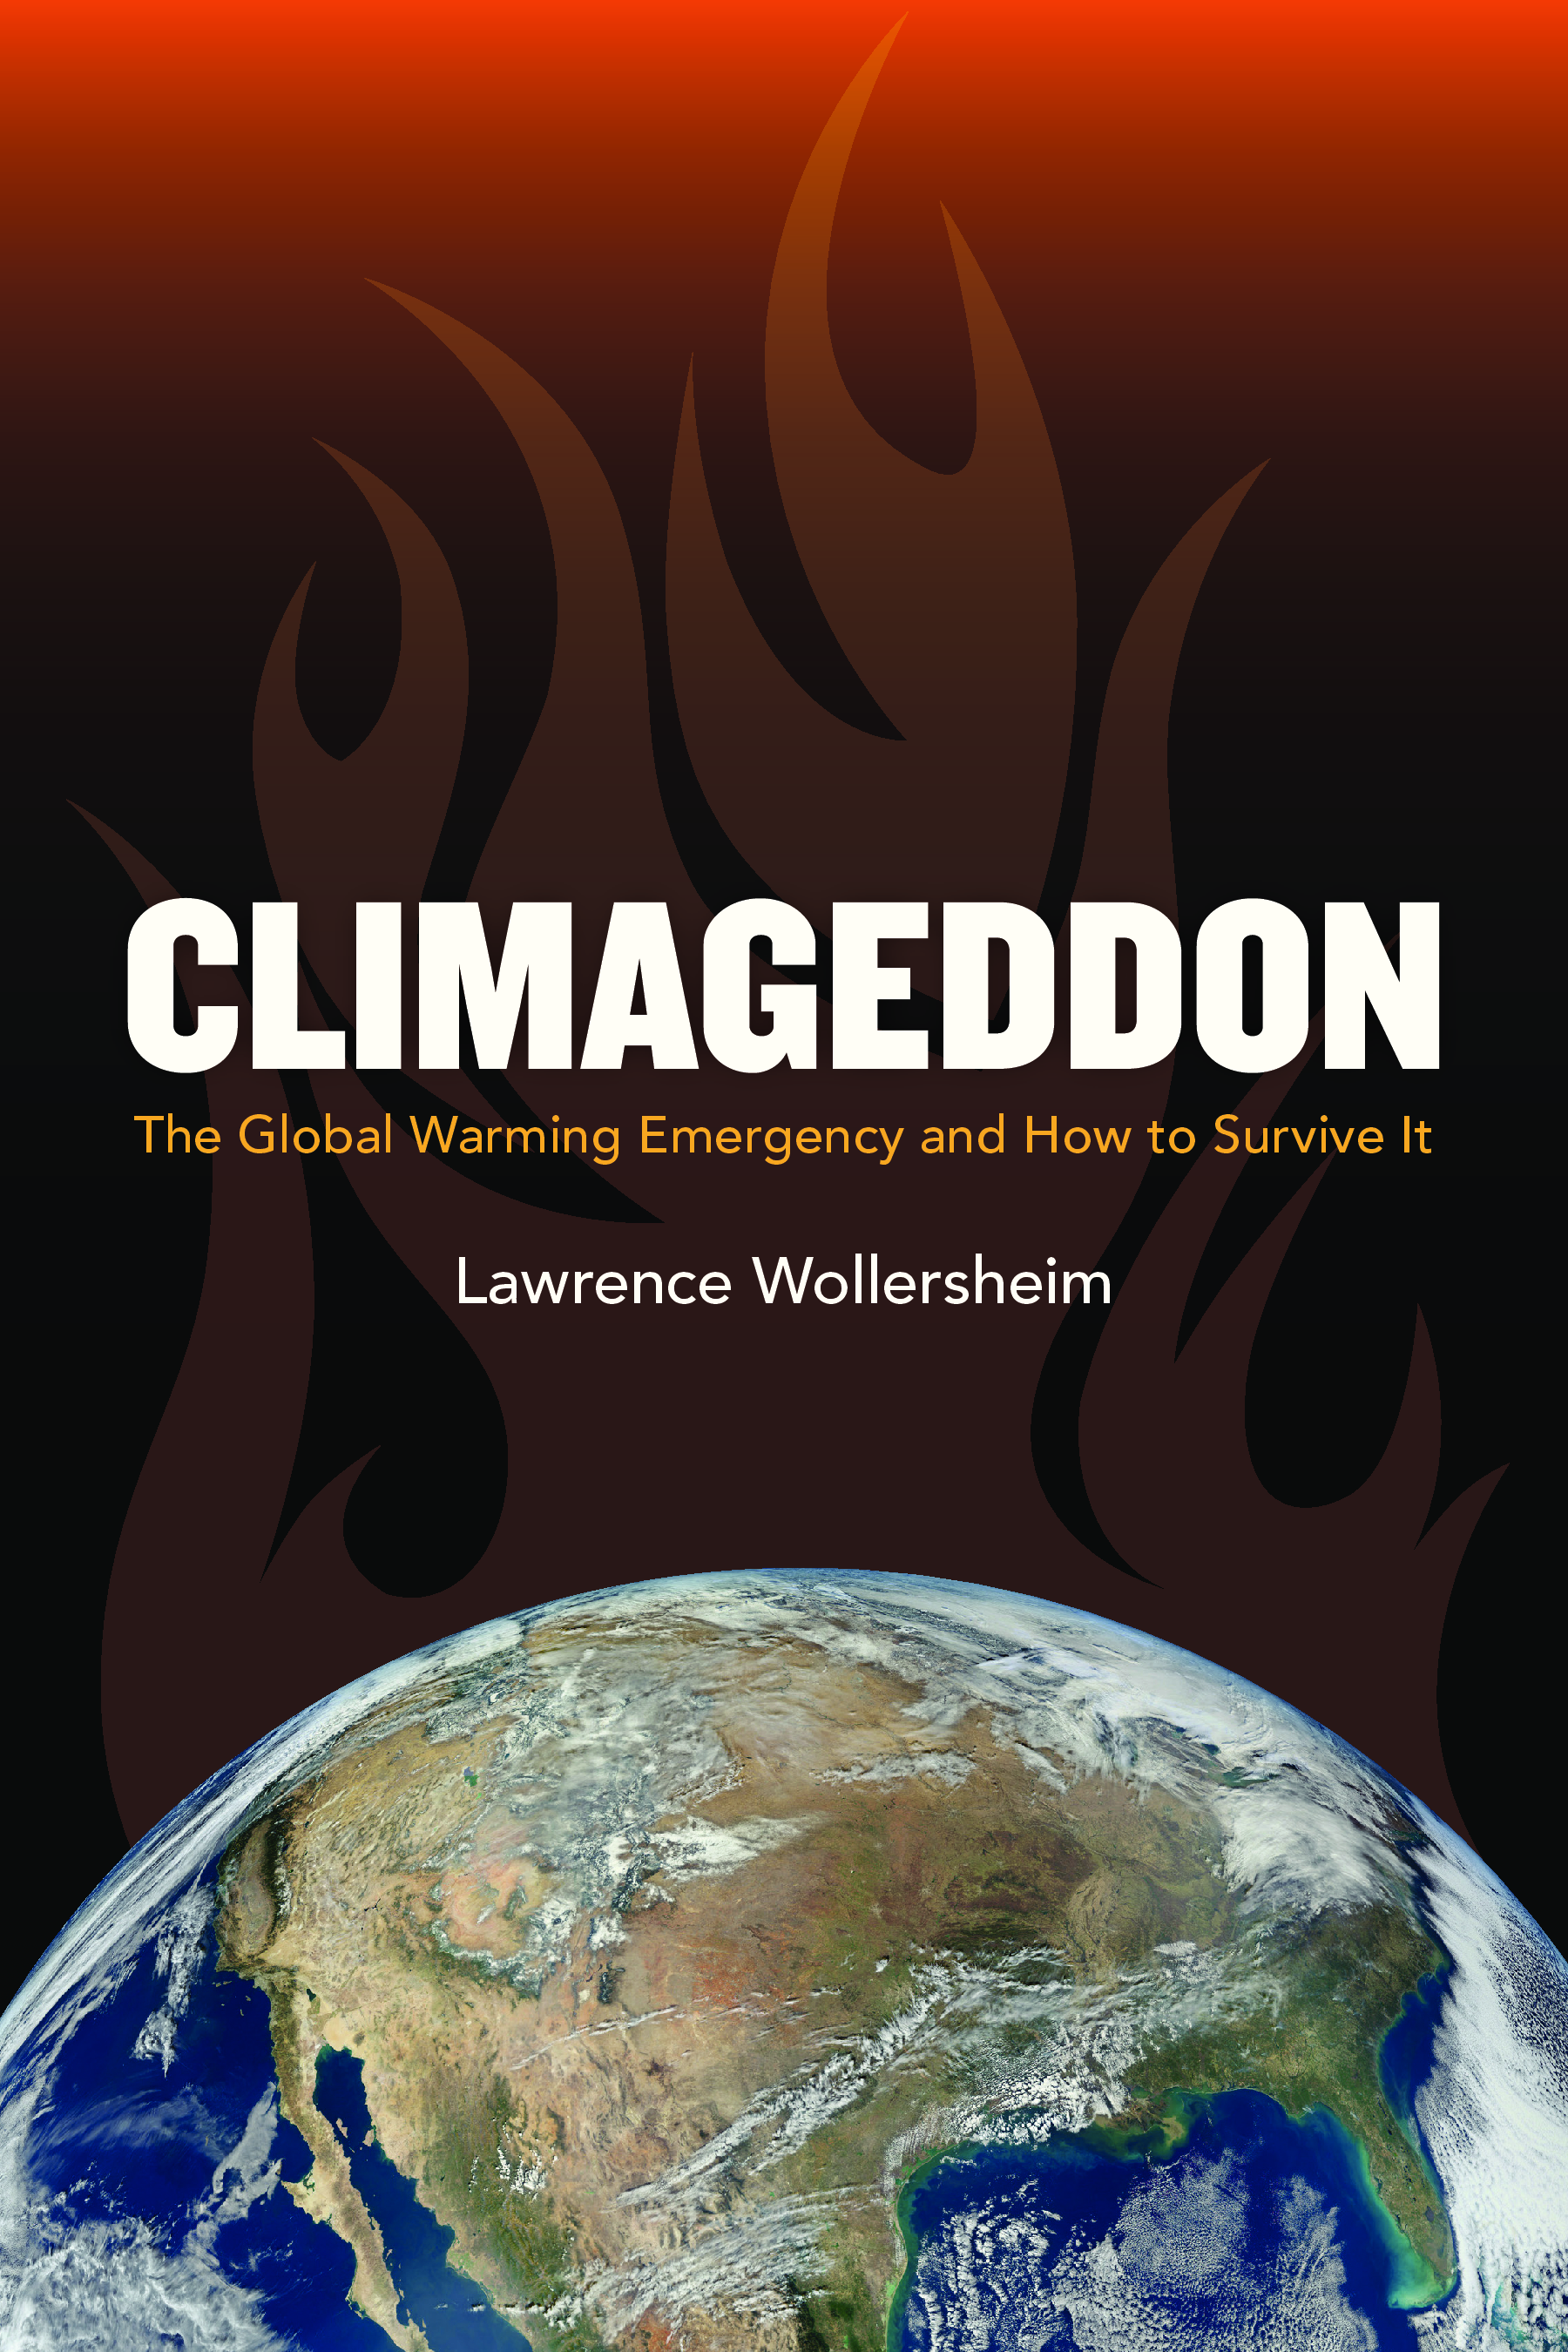 Climageddon_book_cover_r4_113015.png